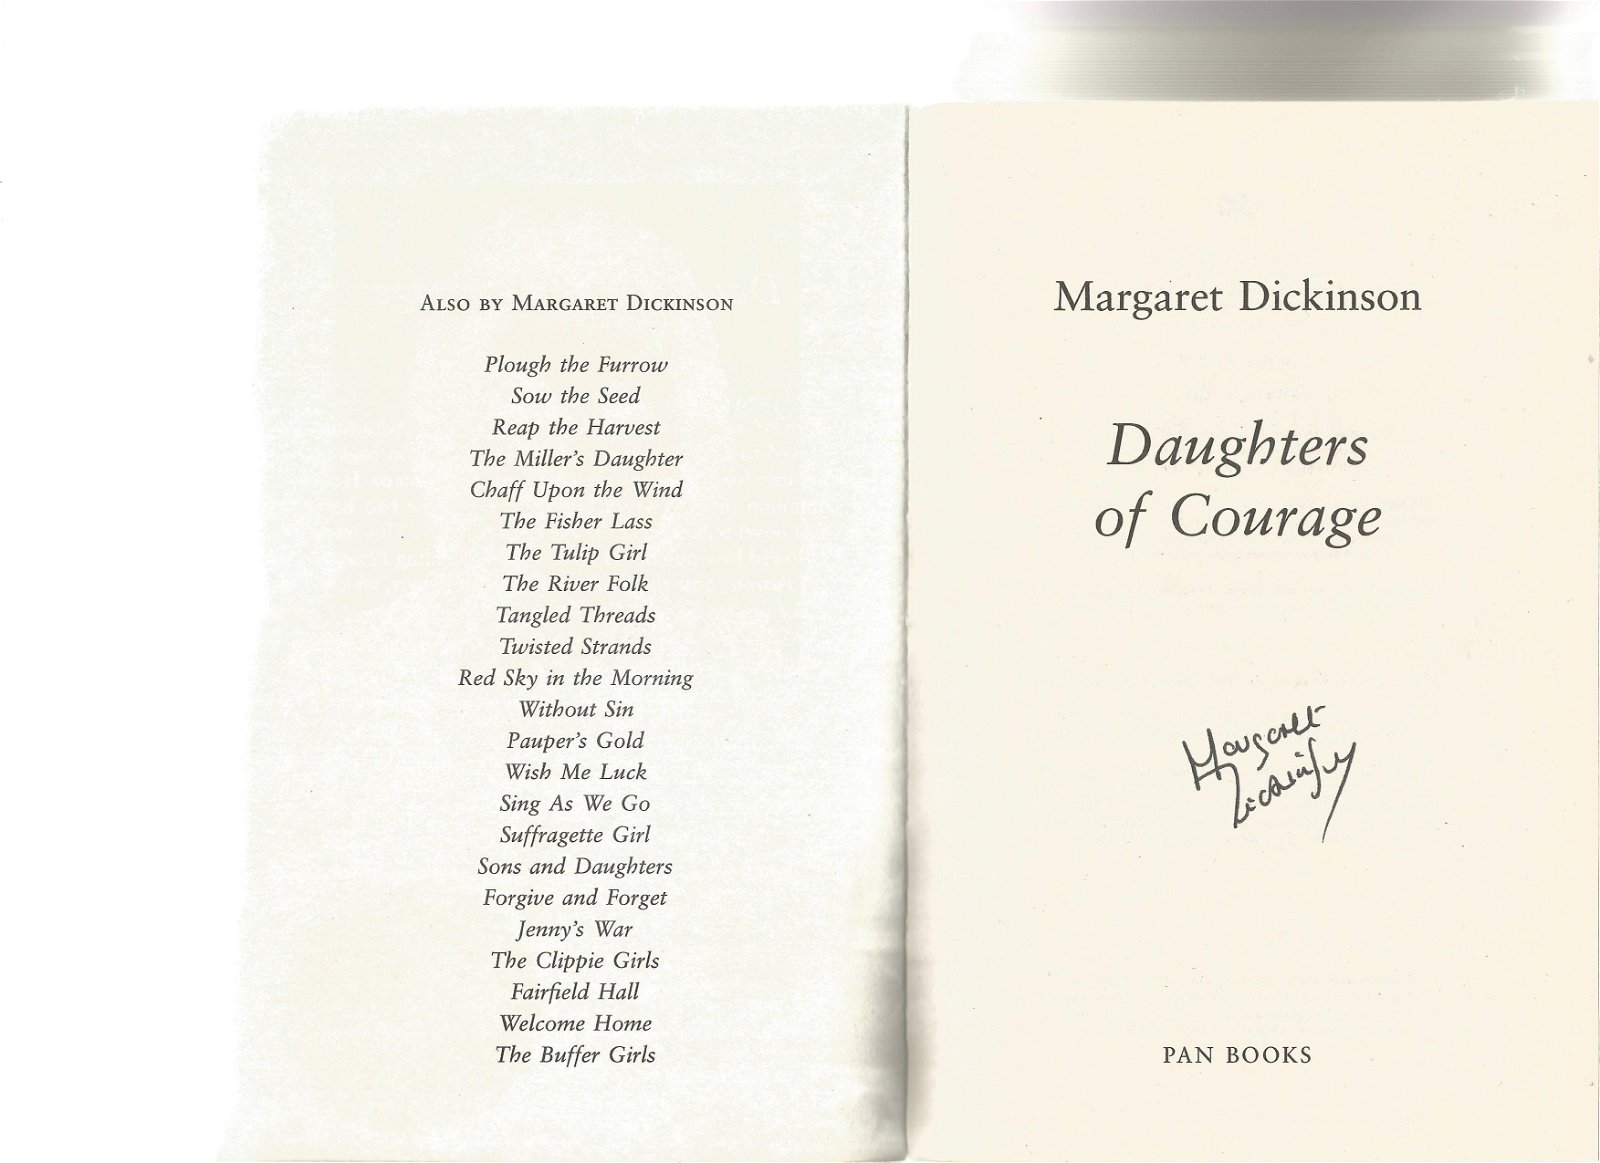 Margaret Dickinson signed Daughters of Courage